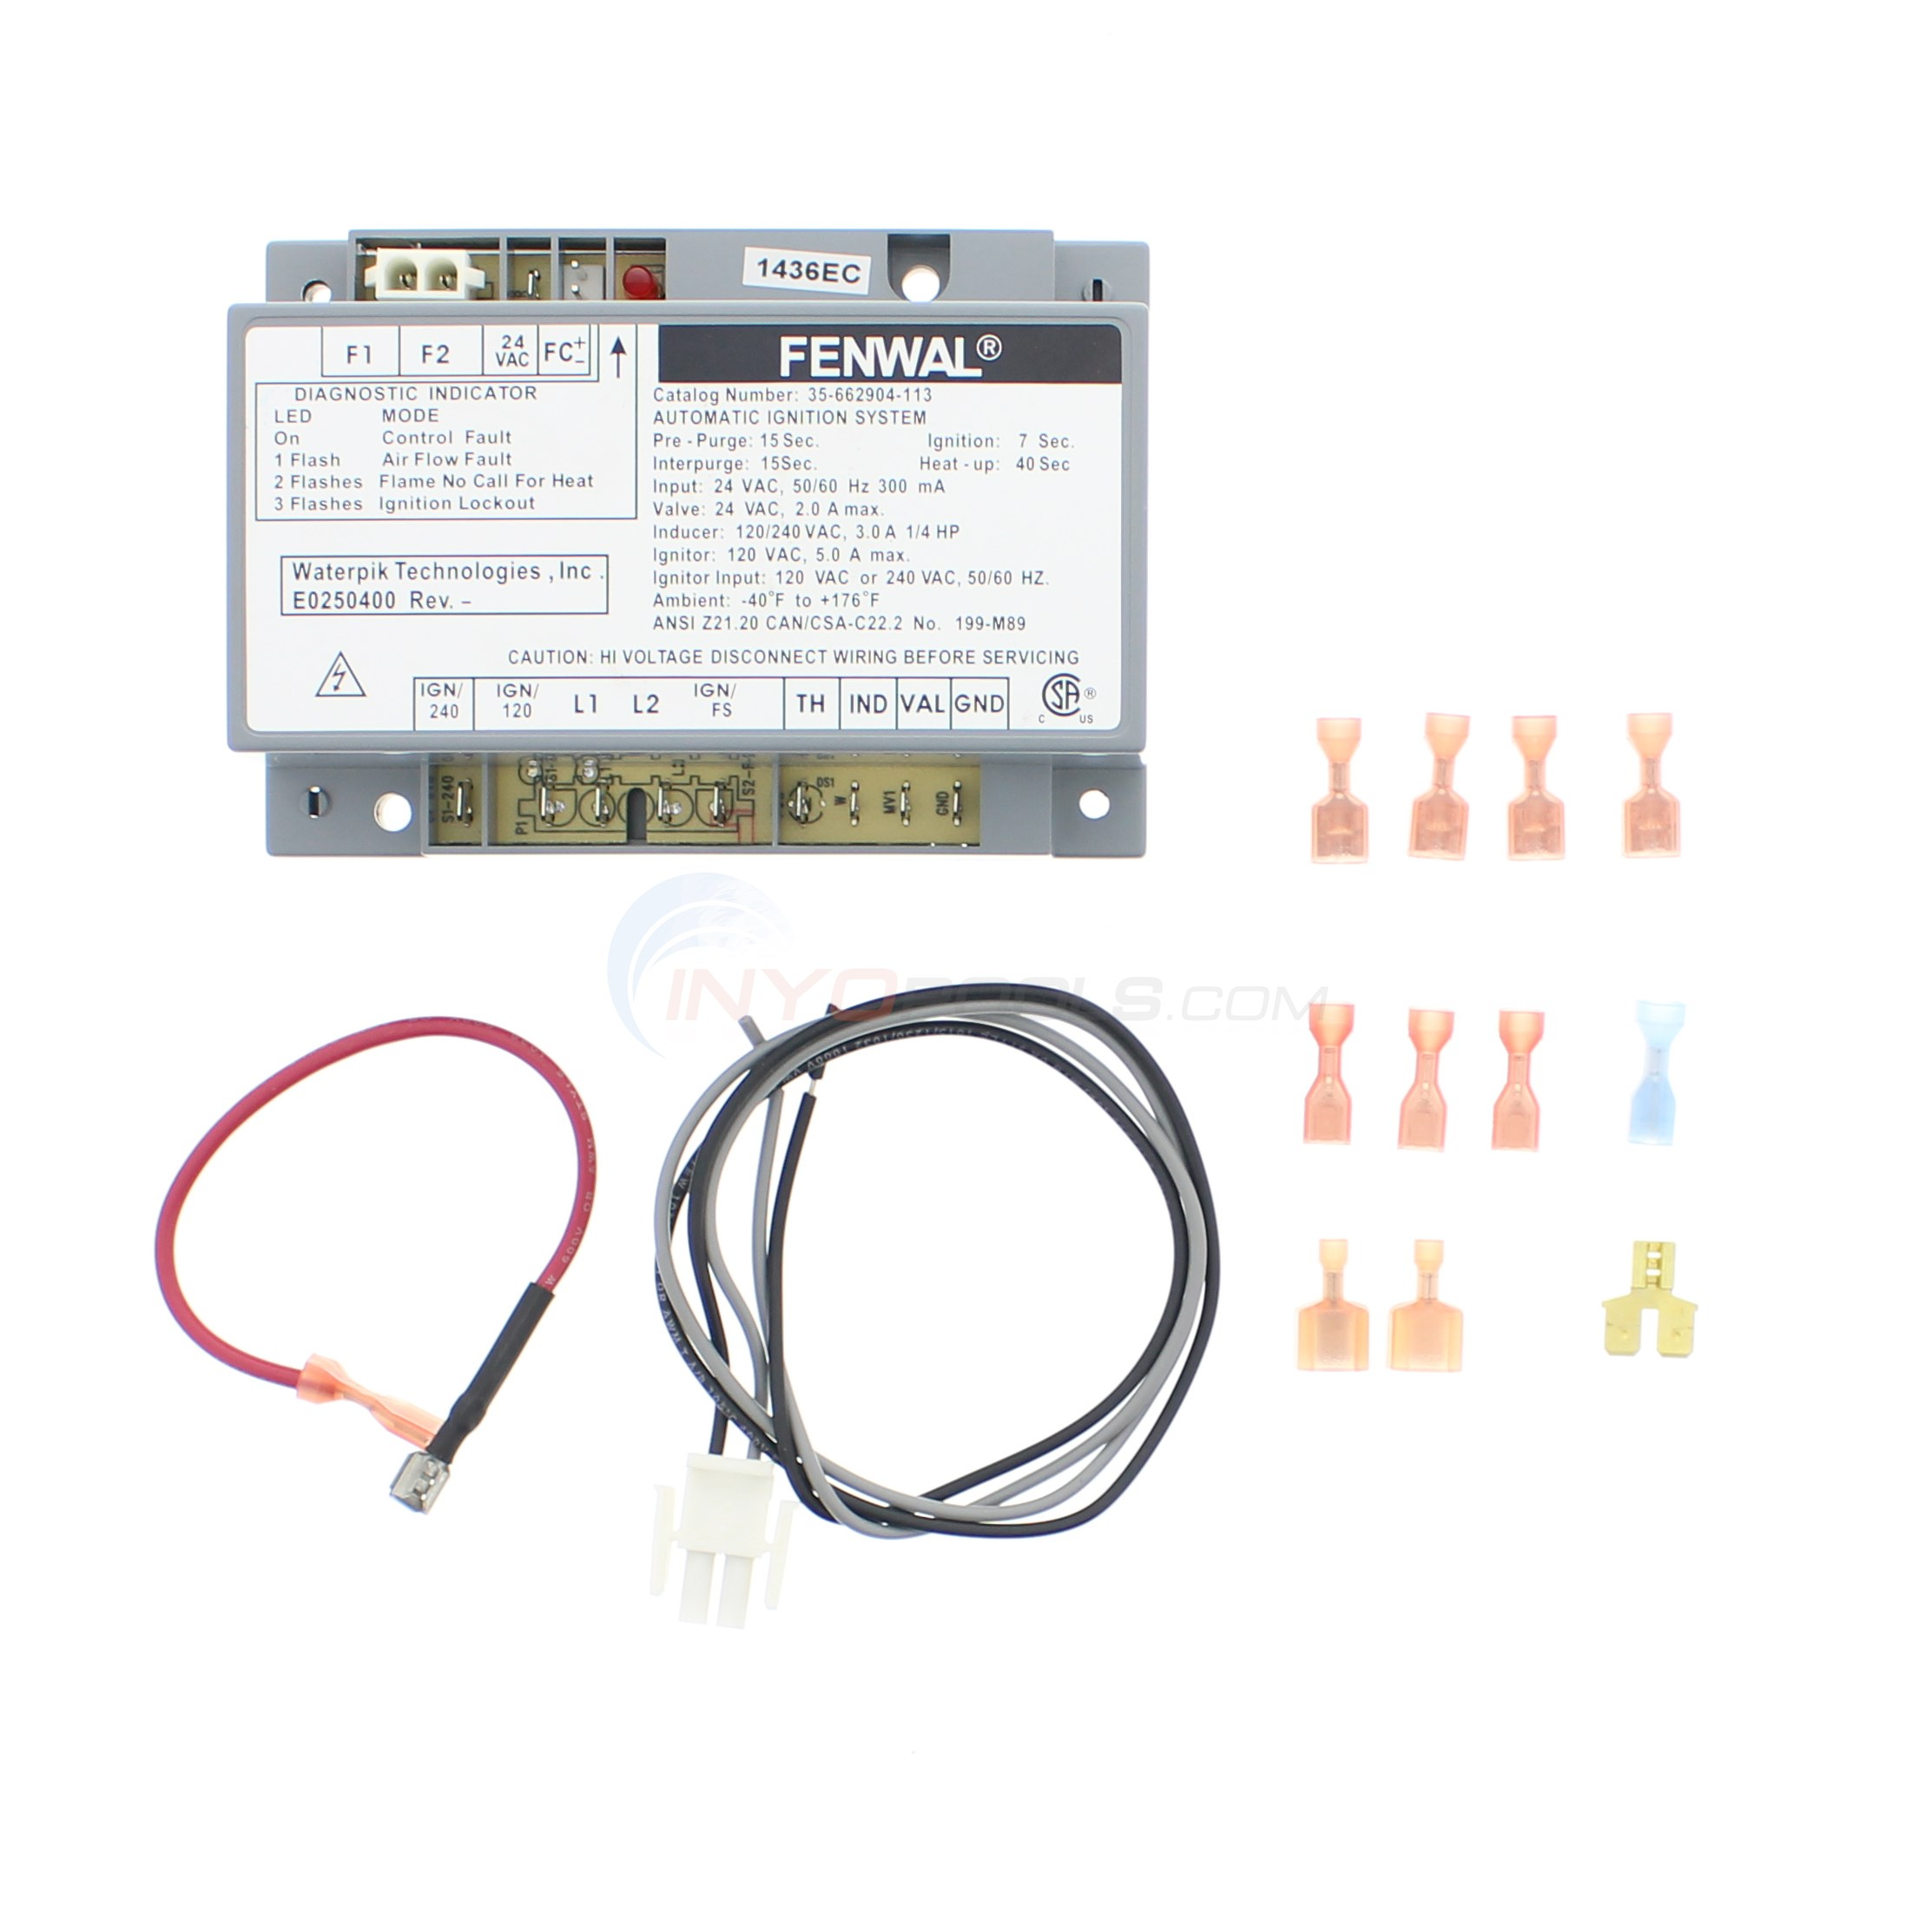 "No Longer Available IGNITION CONTROL Replace With <a class=""productlink"" href=""http://www.inyopools.com/Products/07501352019439.htm"">6200-03</a>"